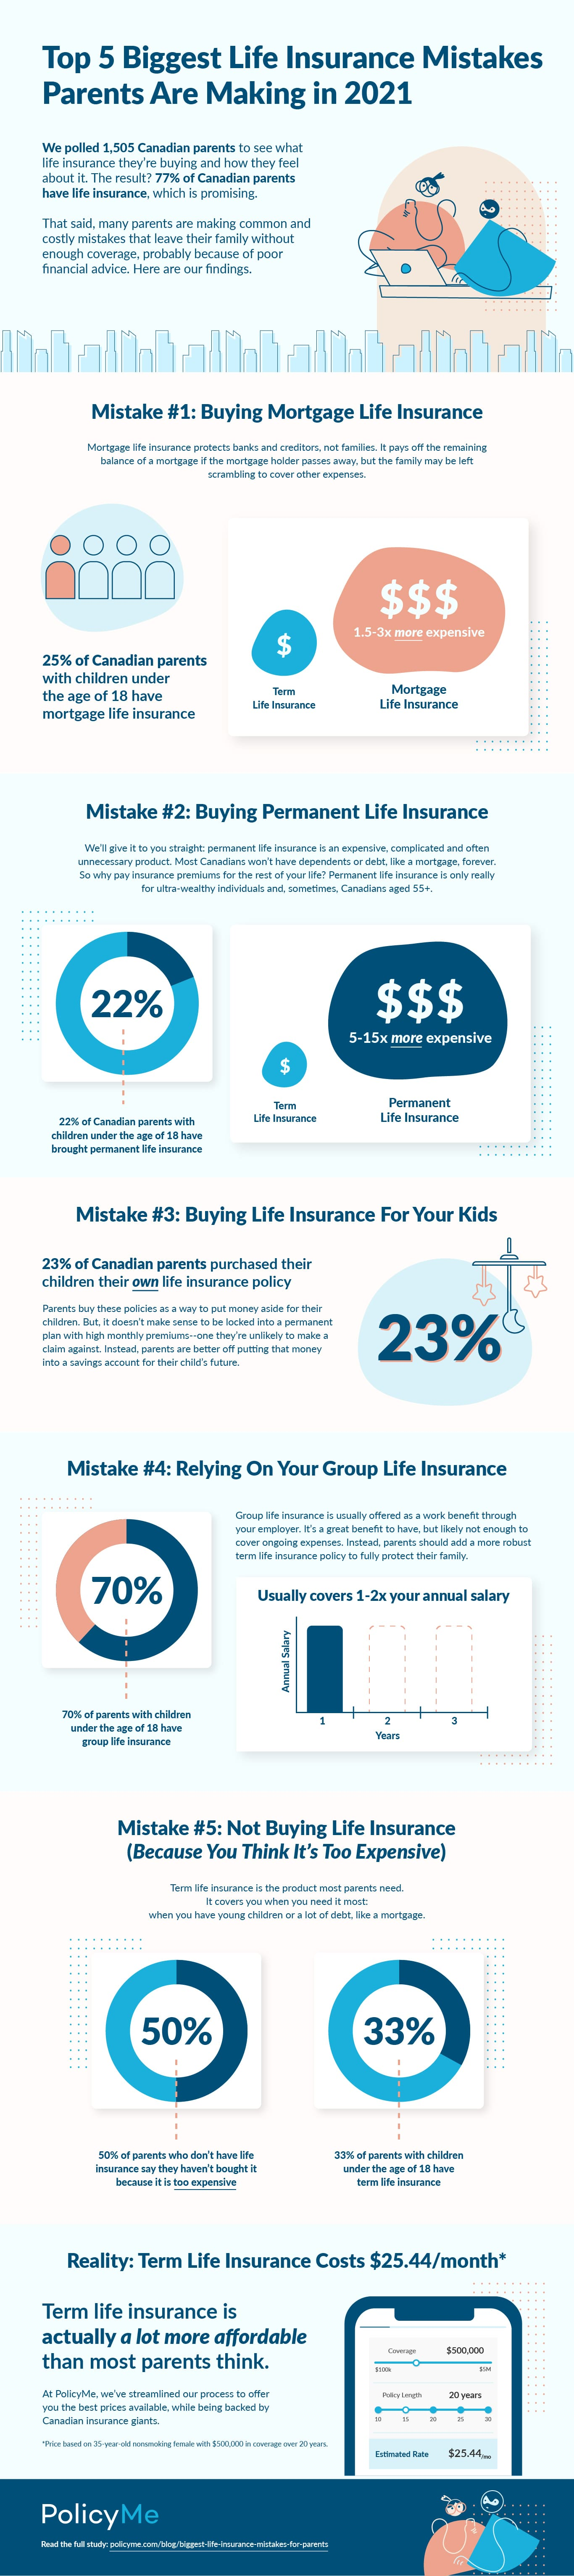 Infographic on the 5 biggest life insurance mistakes for parents in 2021